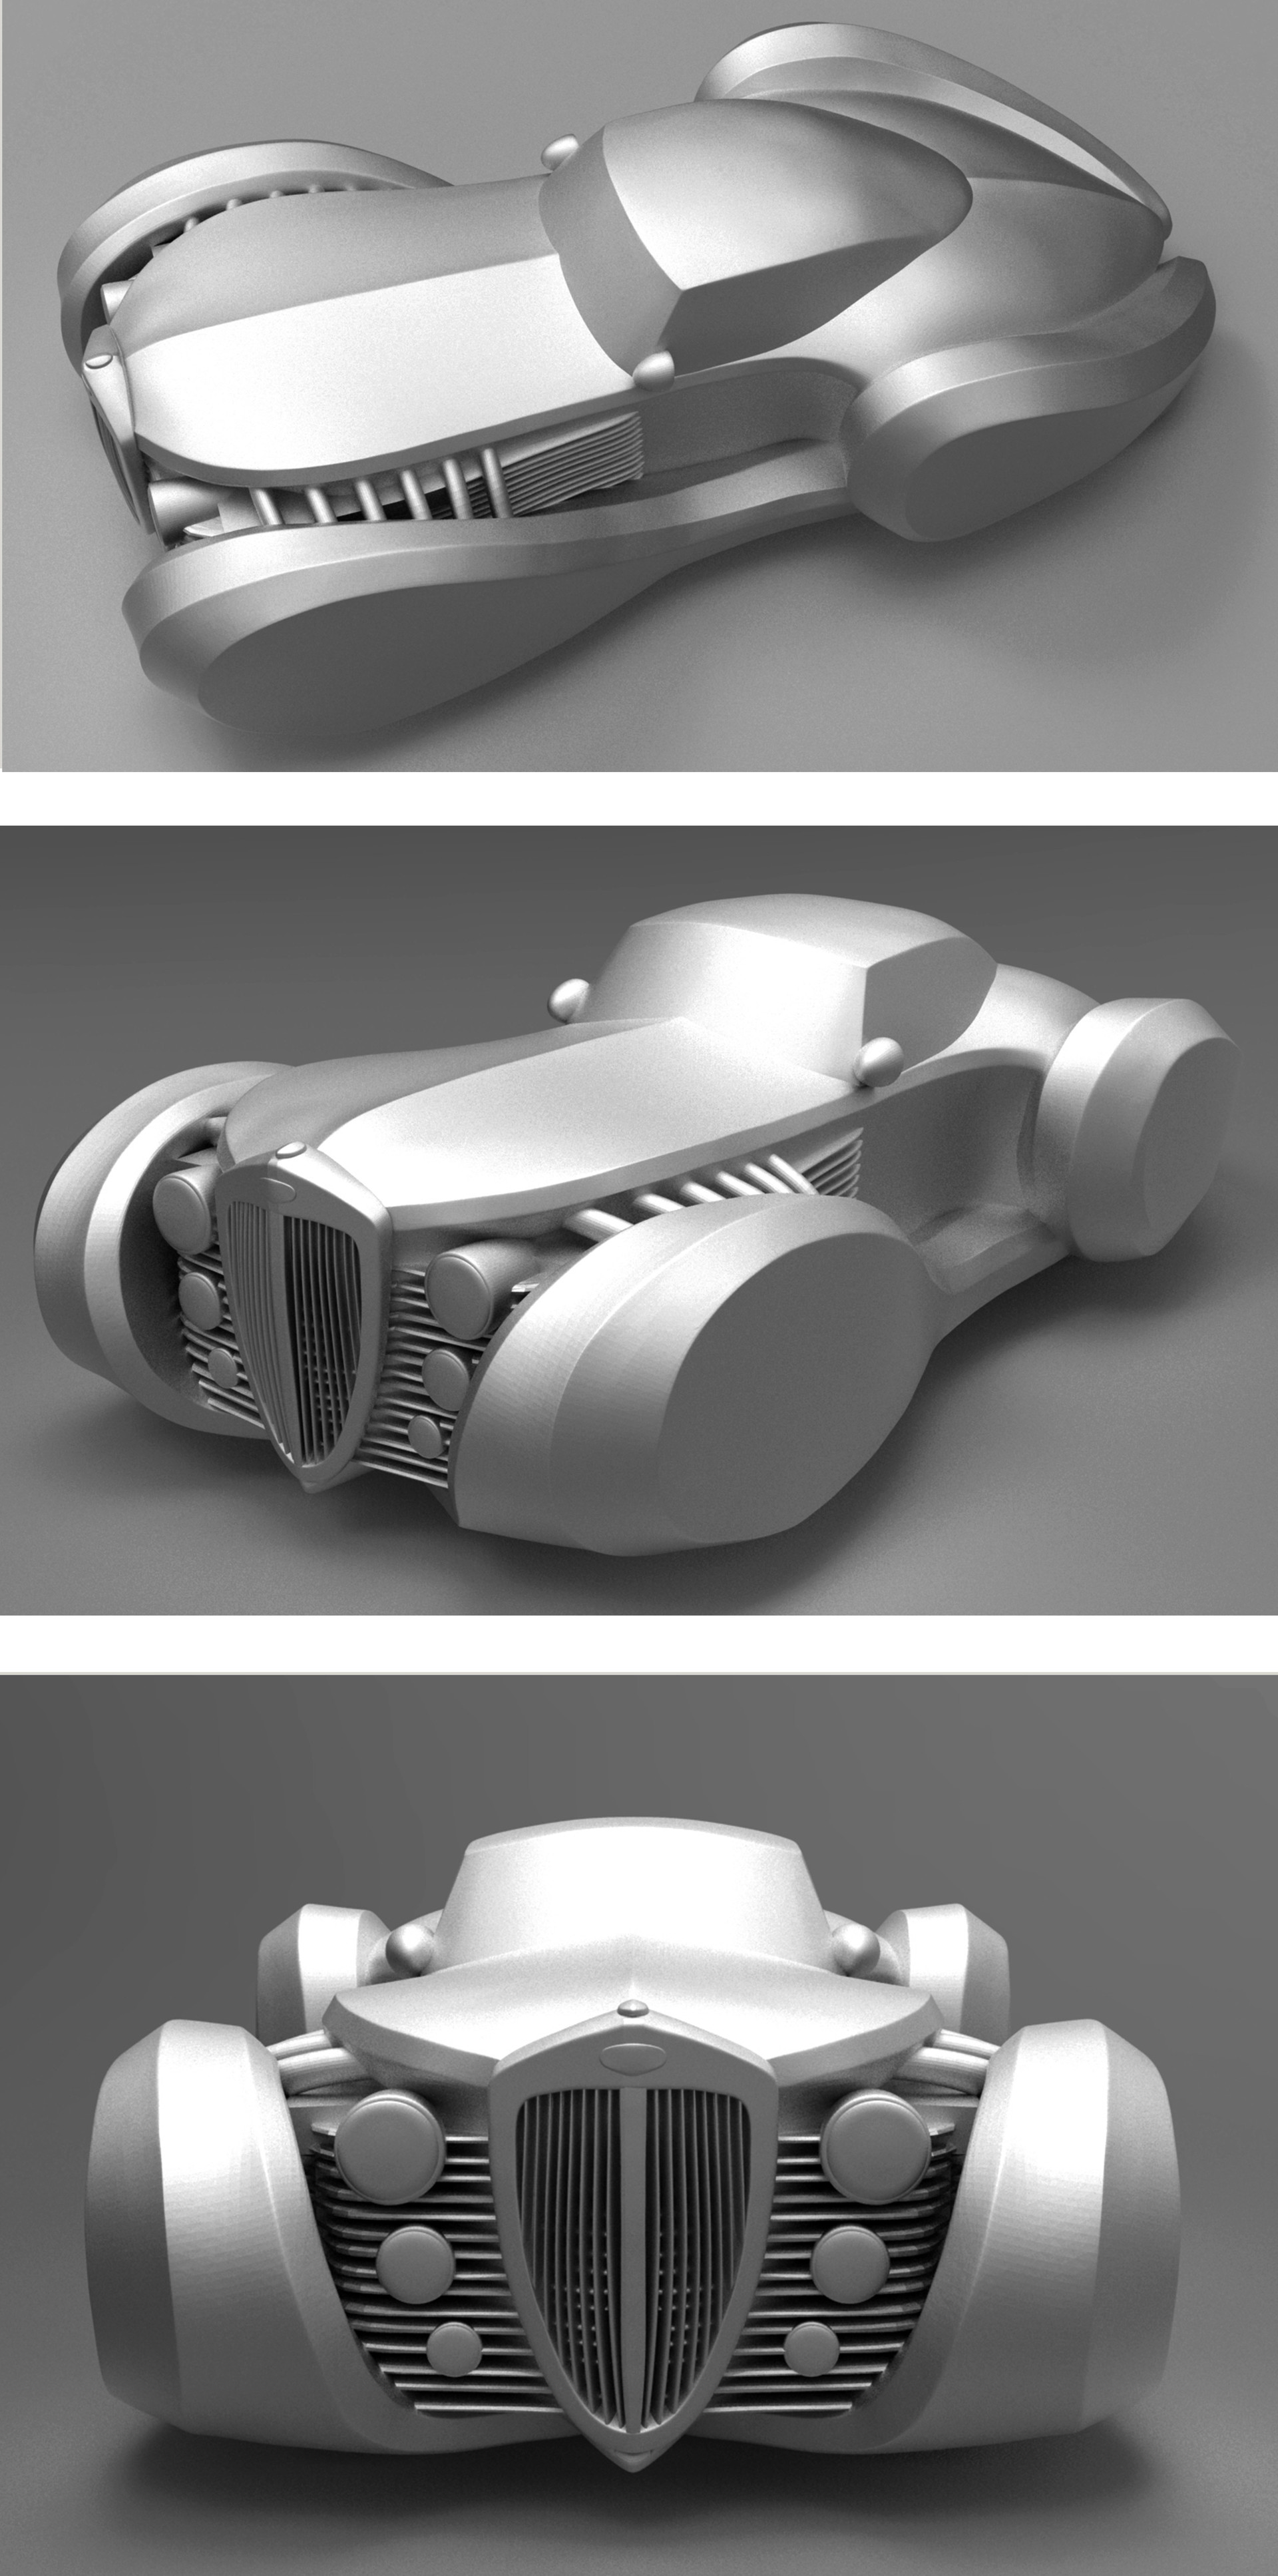 Bradley morgan johnson roadster concept 3 shots